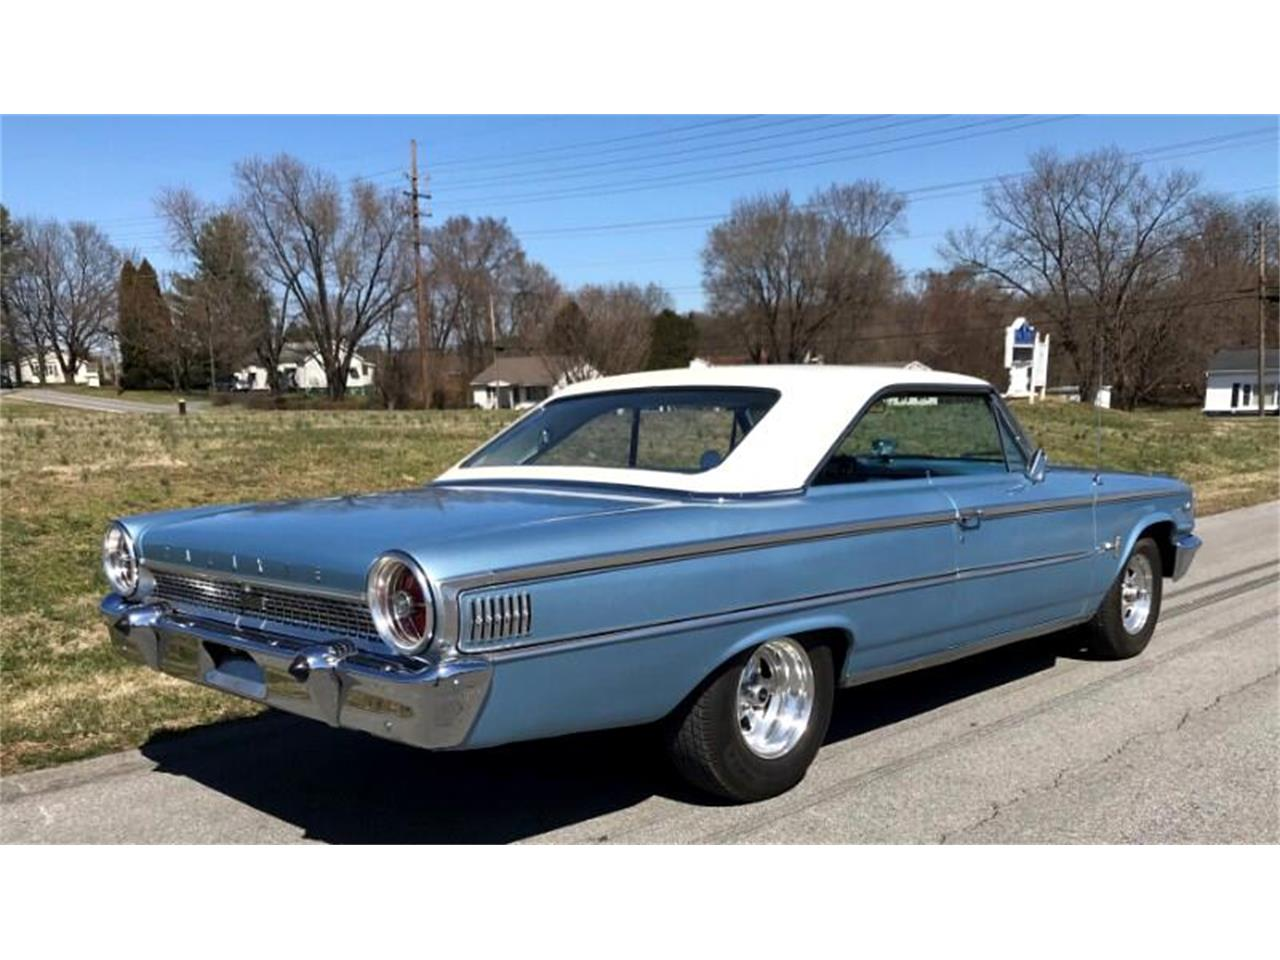 1963 Ford Galaxie 500 (CC-1415899) for sale in Harpers Ferry, West Virginia